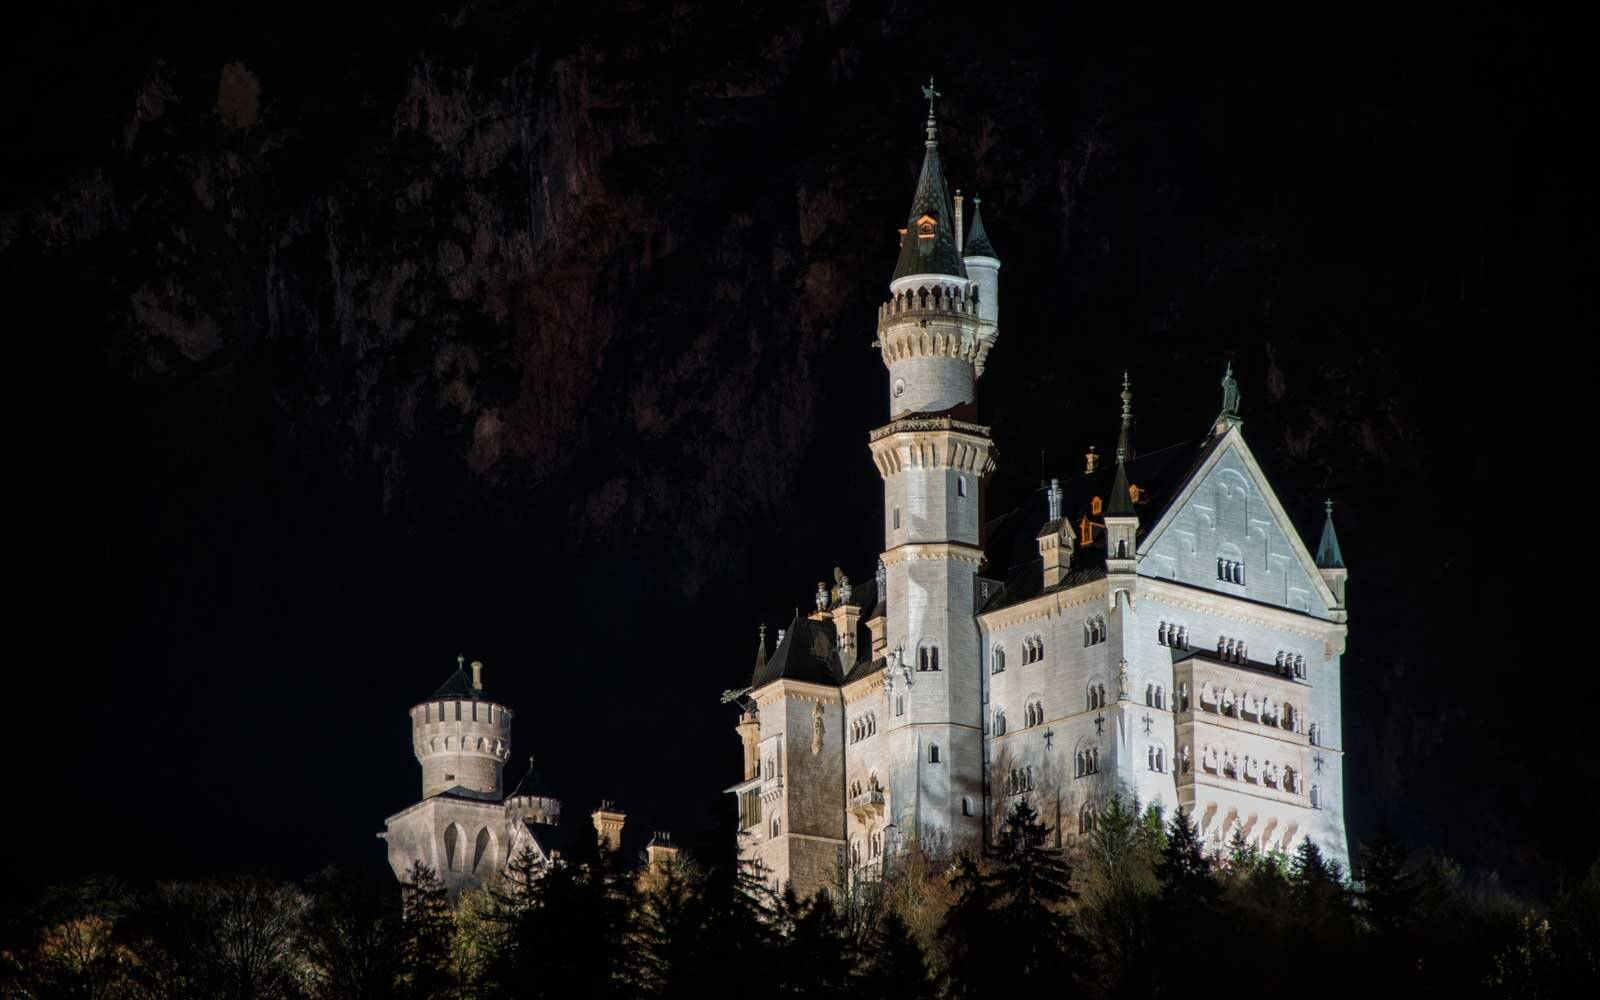 When to Visit Neuschwanstein Castle